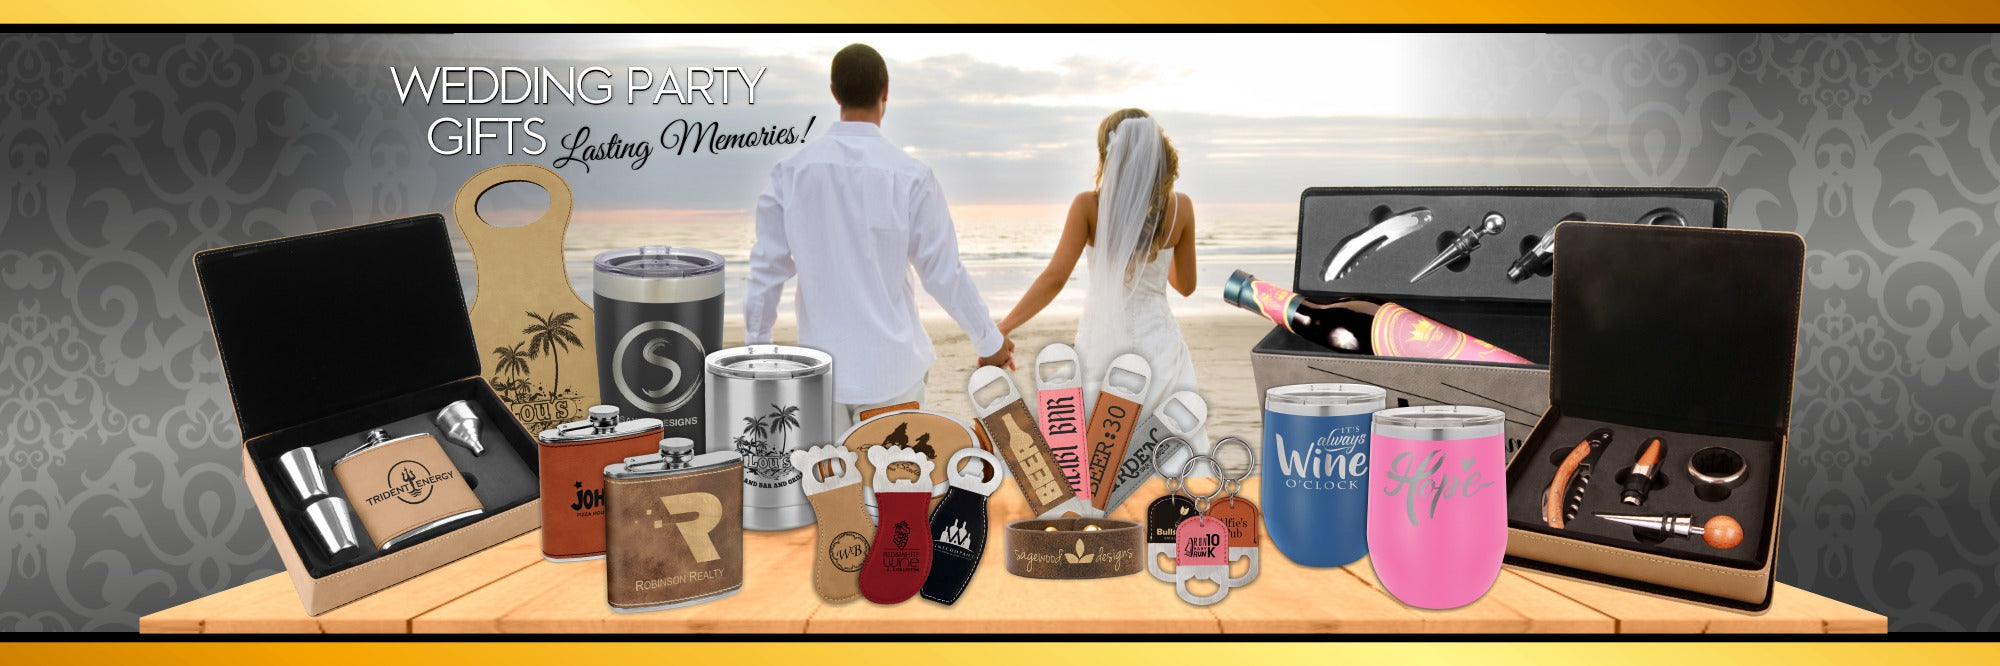 Wedding Gifts Louisiana Trophies